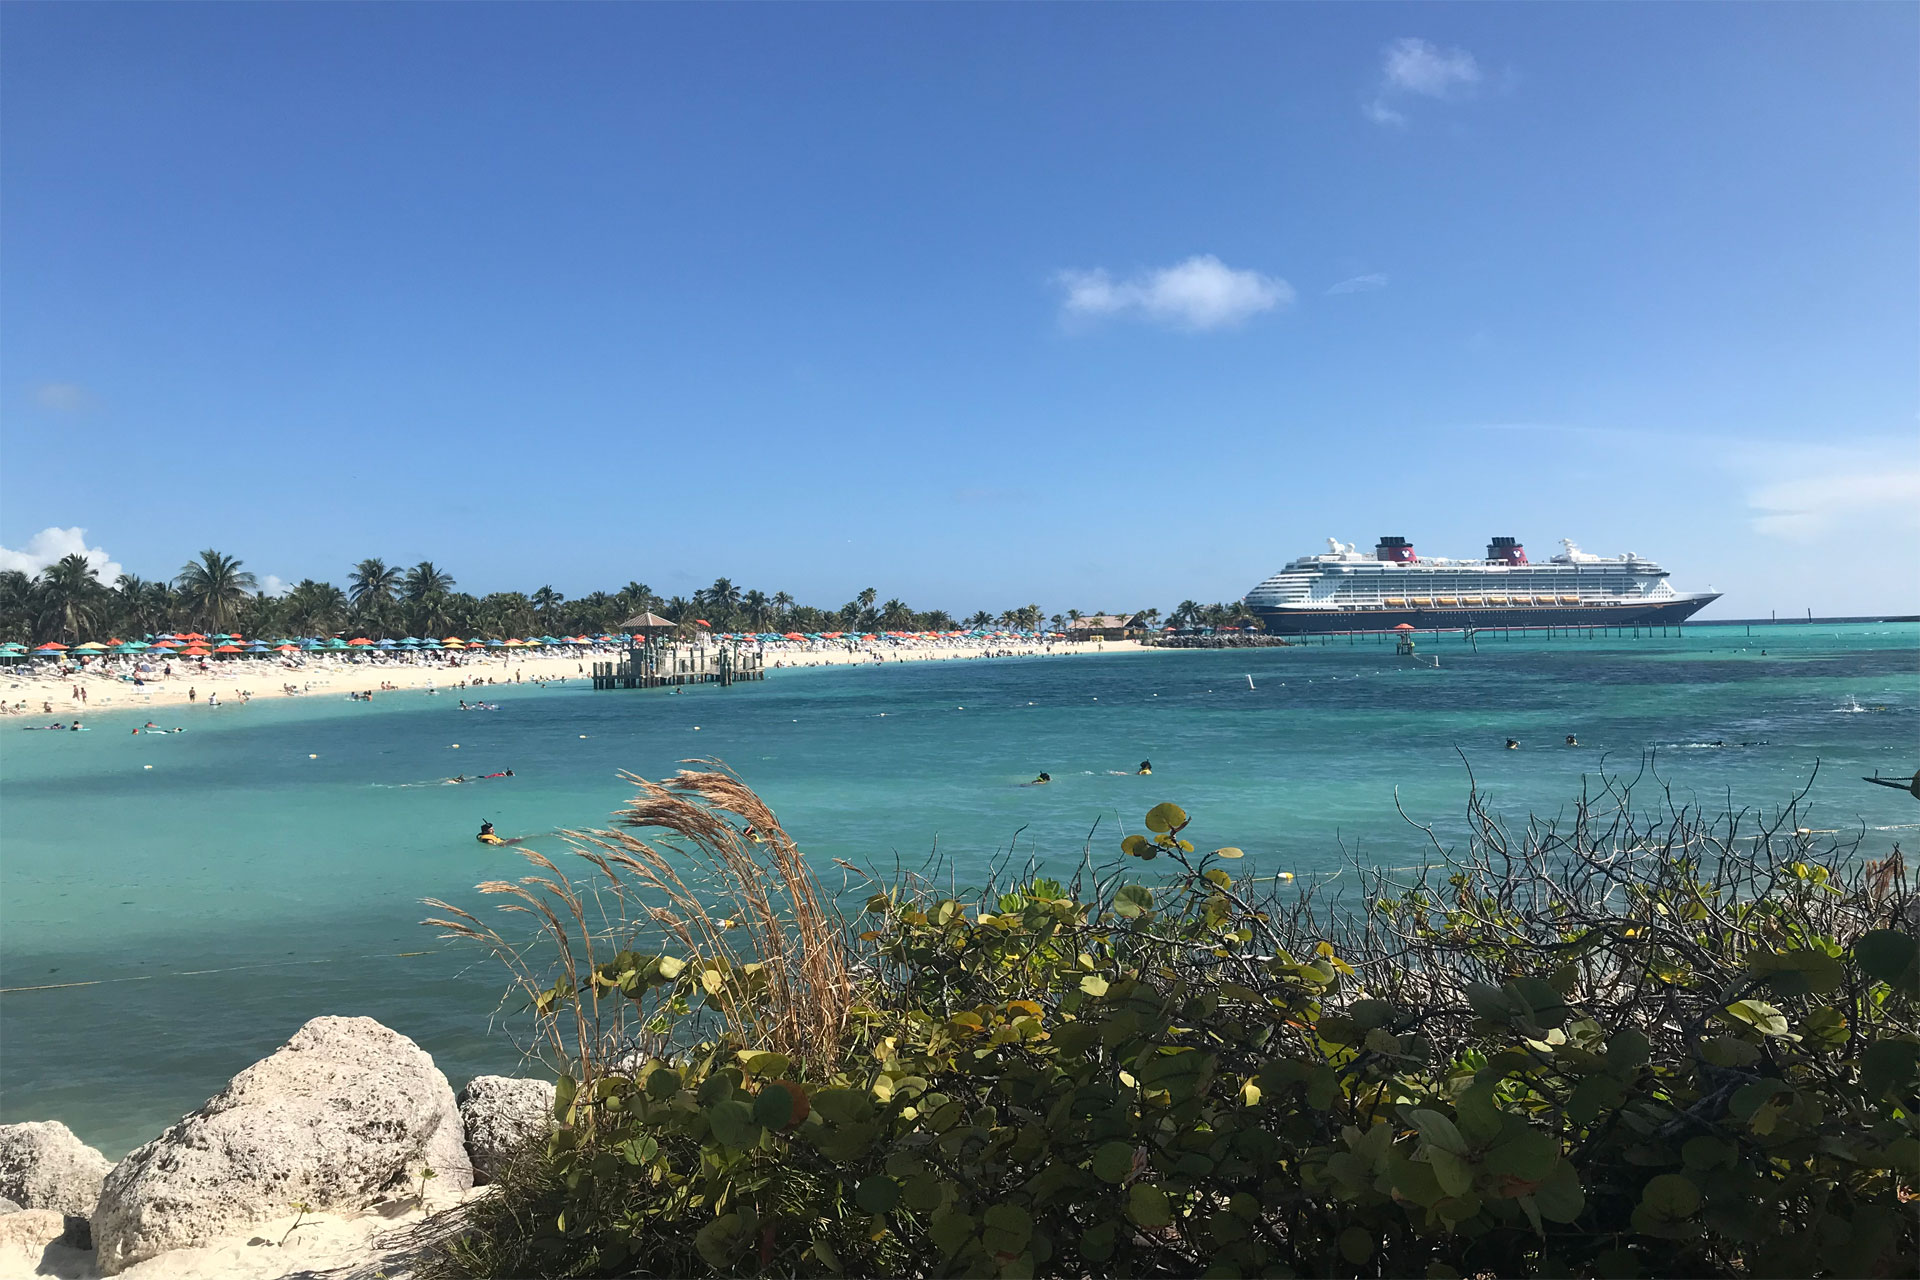 Disney Cruise Line Dream at Castaway Cay; Courtesy of Courtney Elko